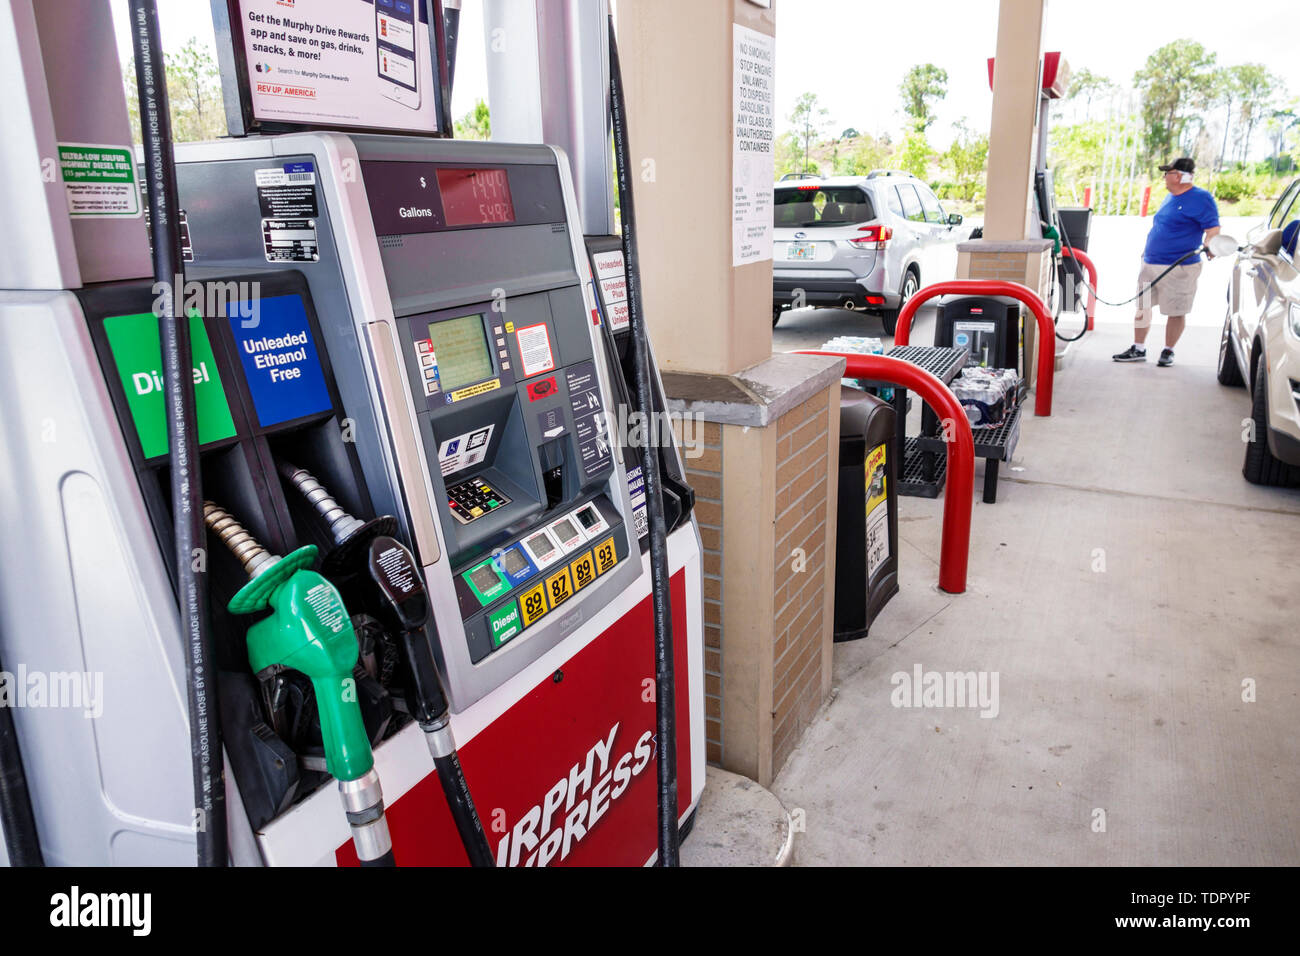 Ethanol Fuel Stock Photos & Ethanol Fuel Stock Images - Page 3 - Alamy